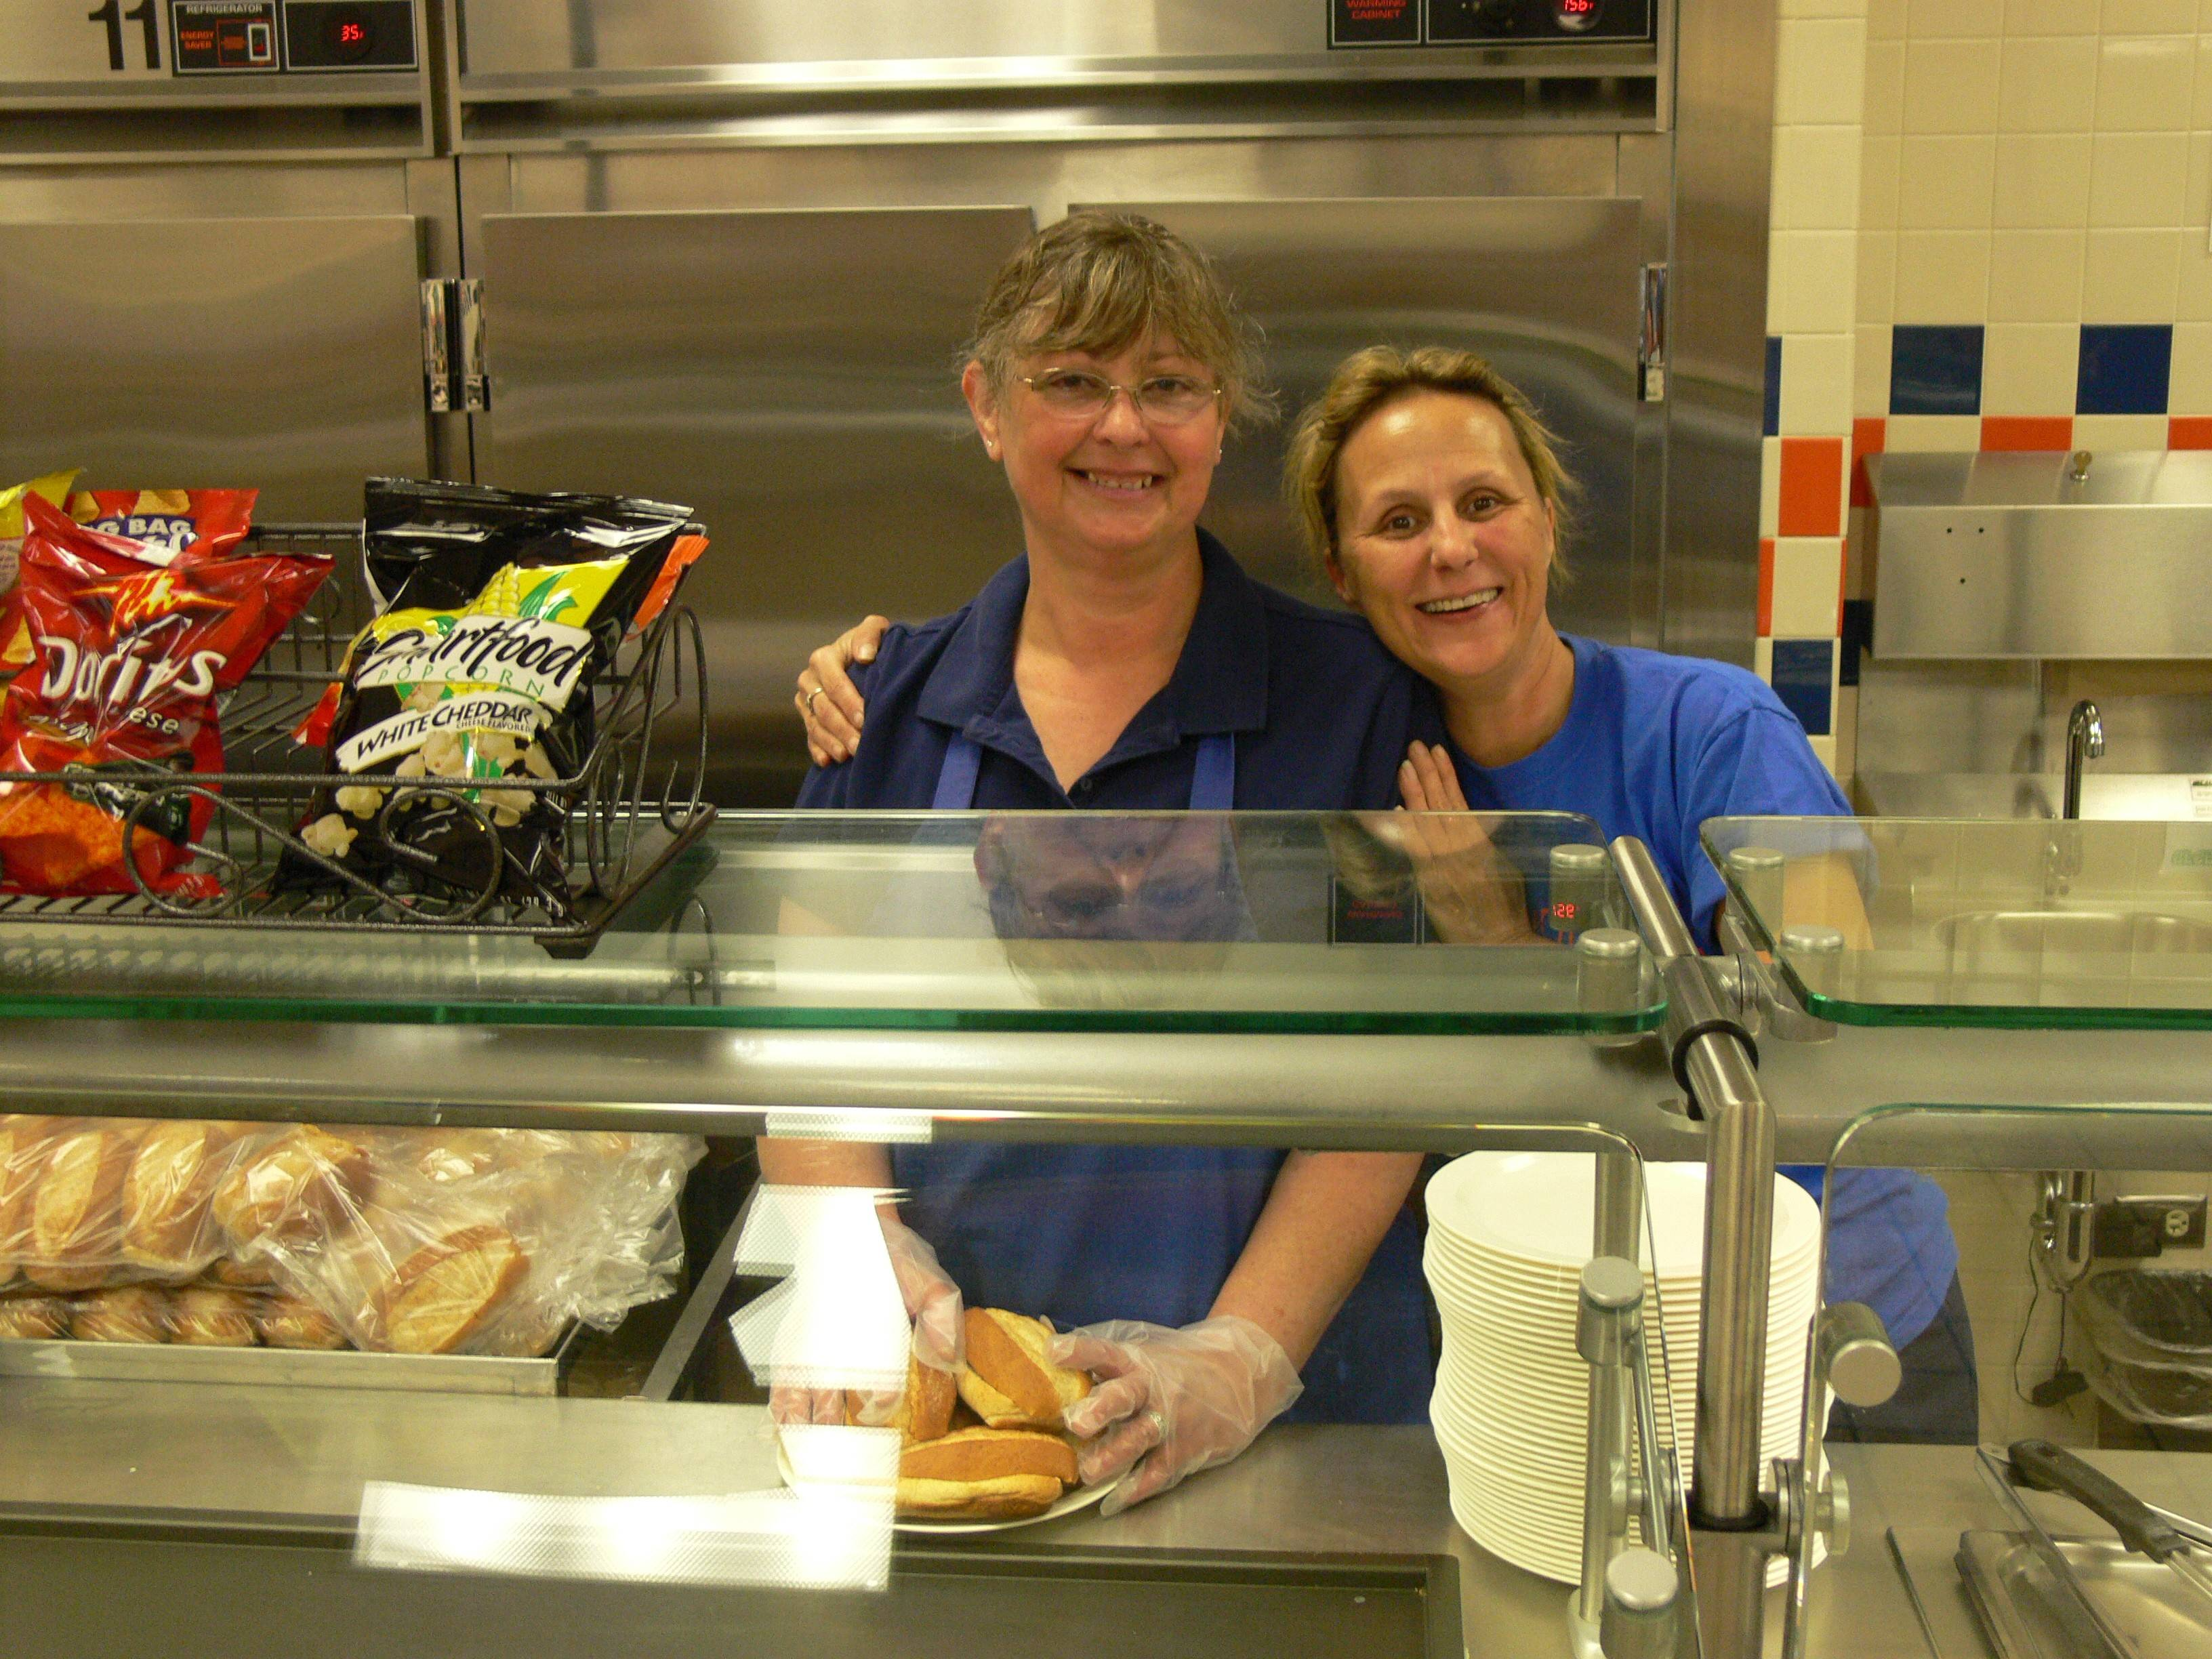 Hoffman Estates High School cafeteria workers Sue Spence, left, and Cindy O'Donnell pose for a photo.